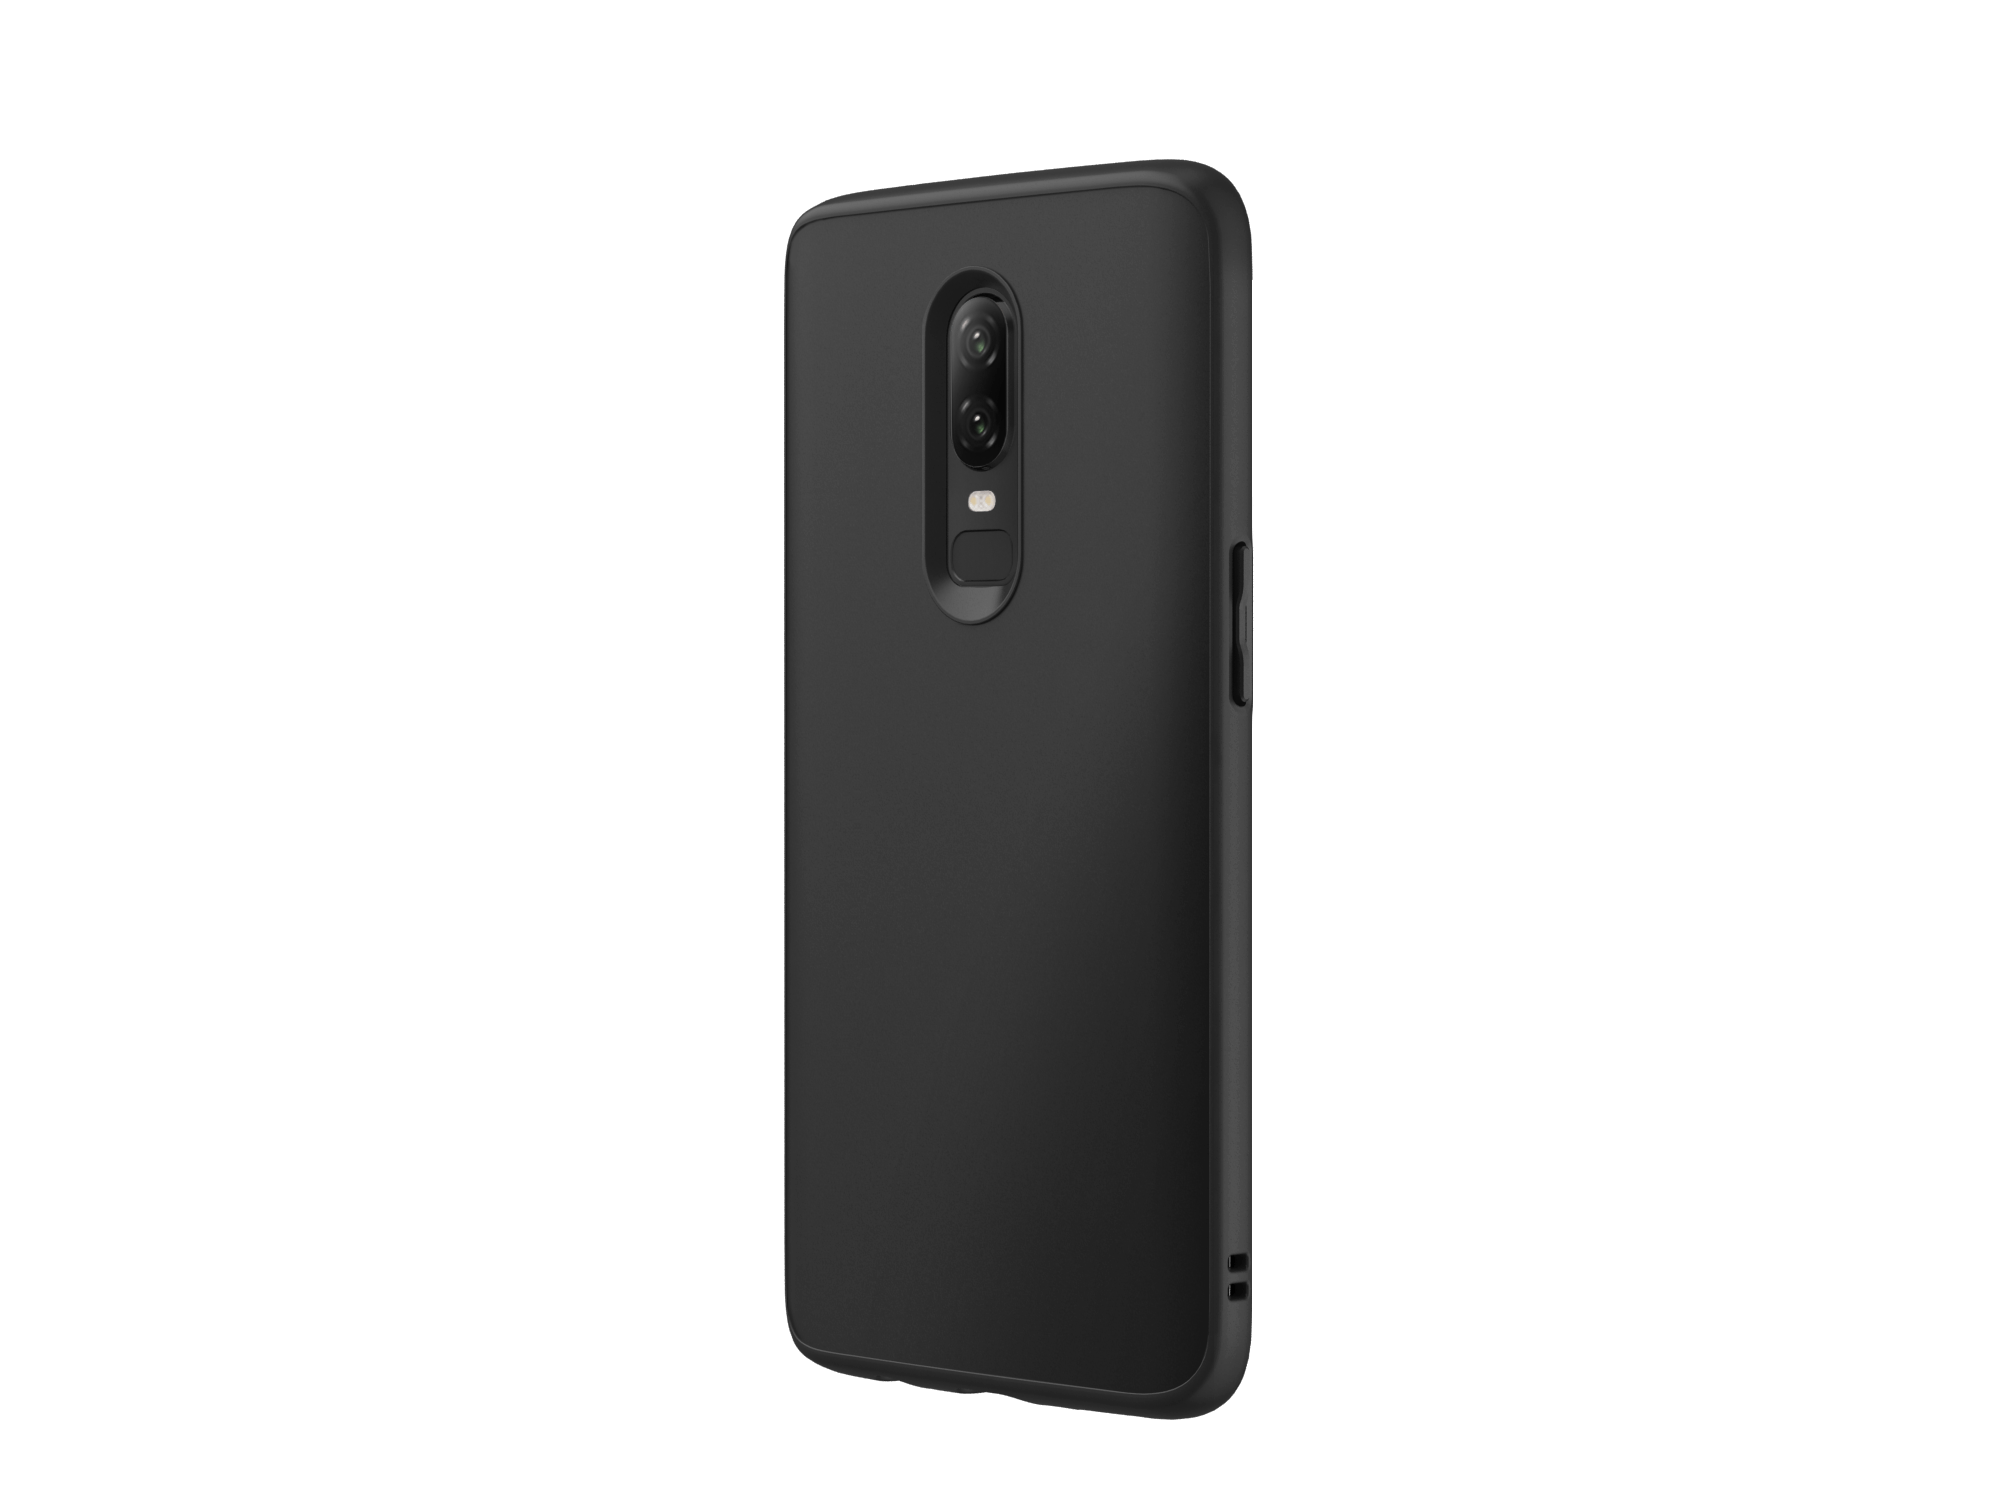 RhinoShield - SolidSuit for OnePlus 6